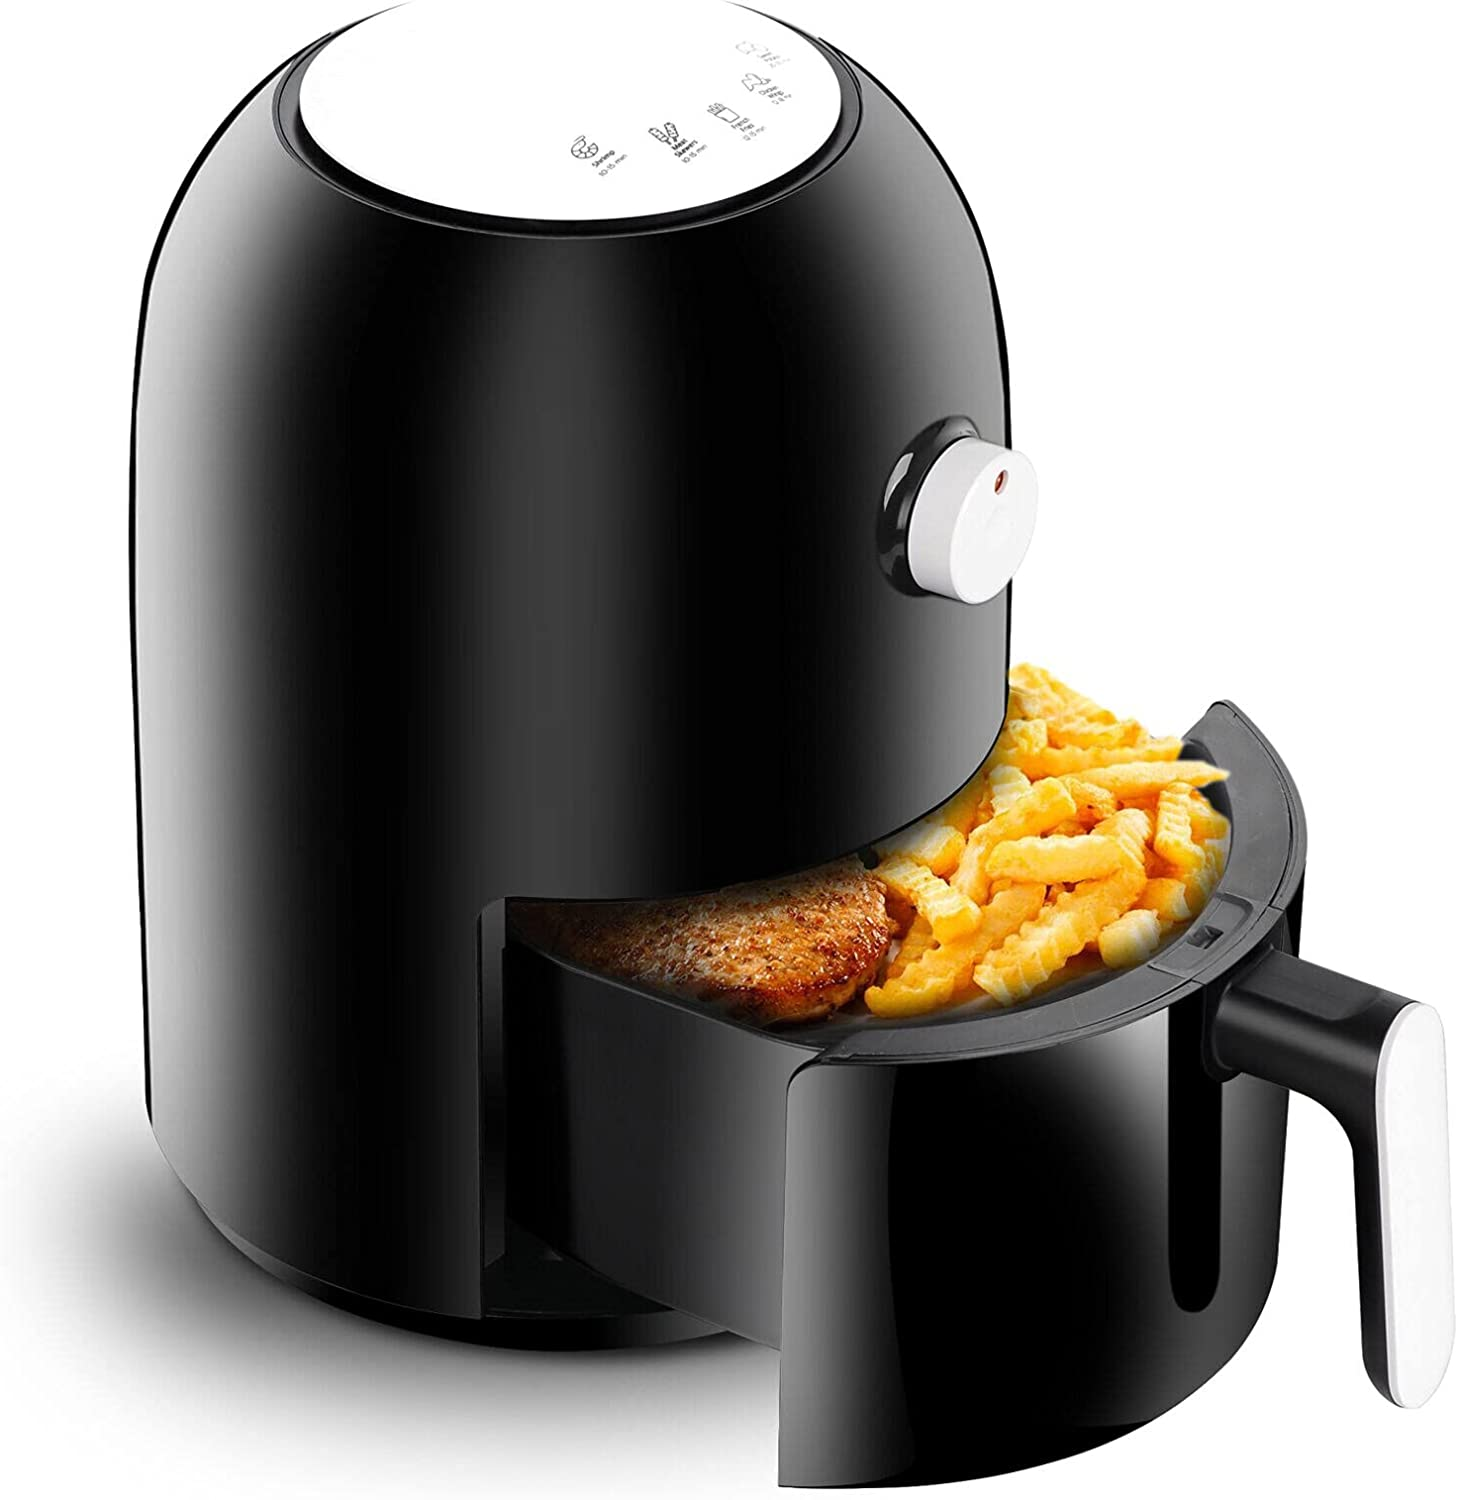 770W Compact Mini Oil-less Air Large special price 2.1qt Appli Tucson Mall Fryer Kitchen Healthy